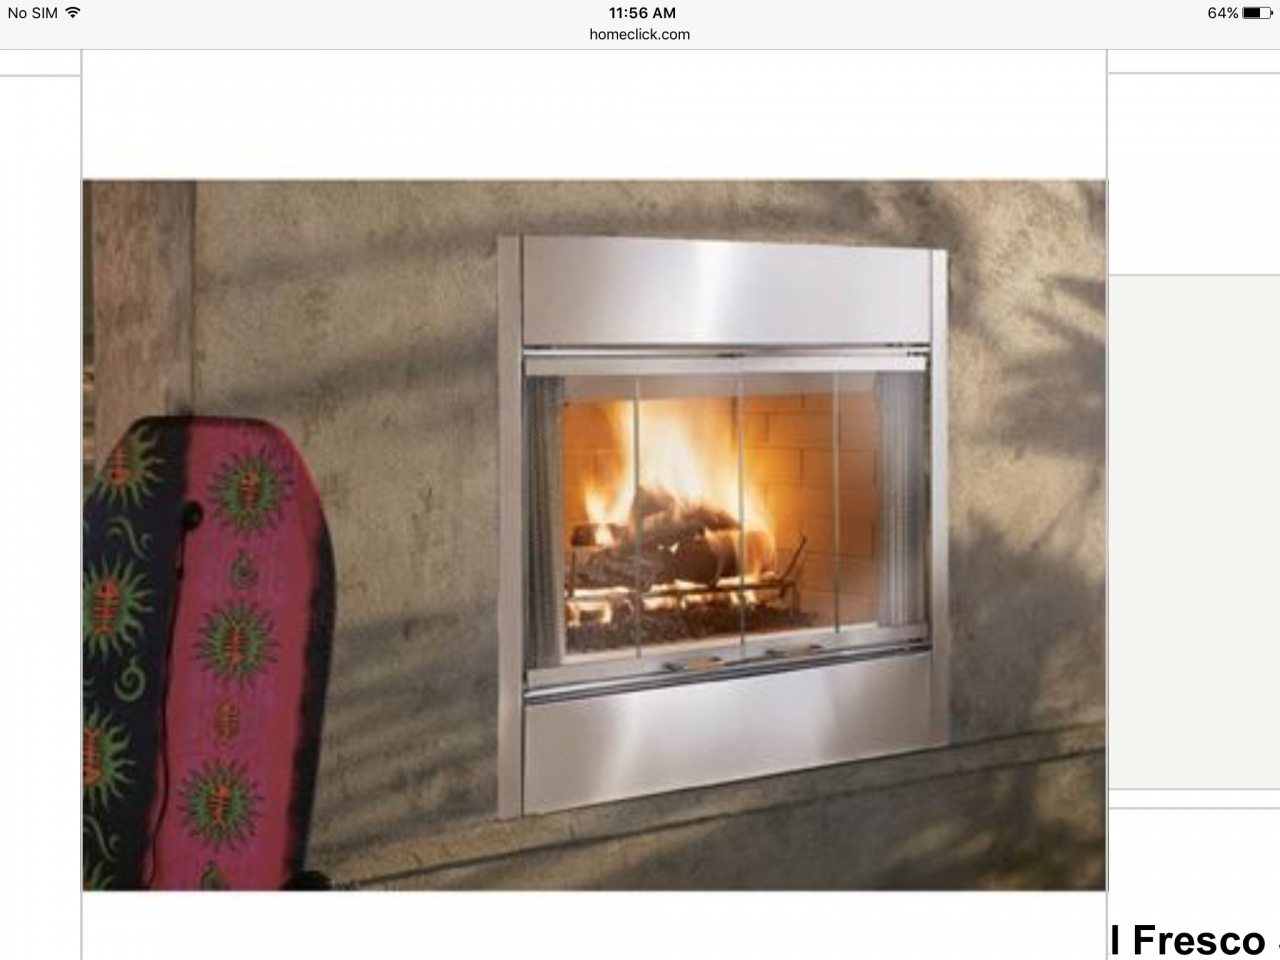 vent free gas fireplace inserts majestic al fresco 42 inch vent free gas outdoor fireplace odgsr42arn from vent free gas fireplace inserts